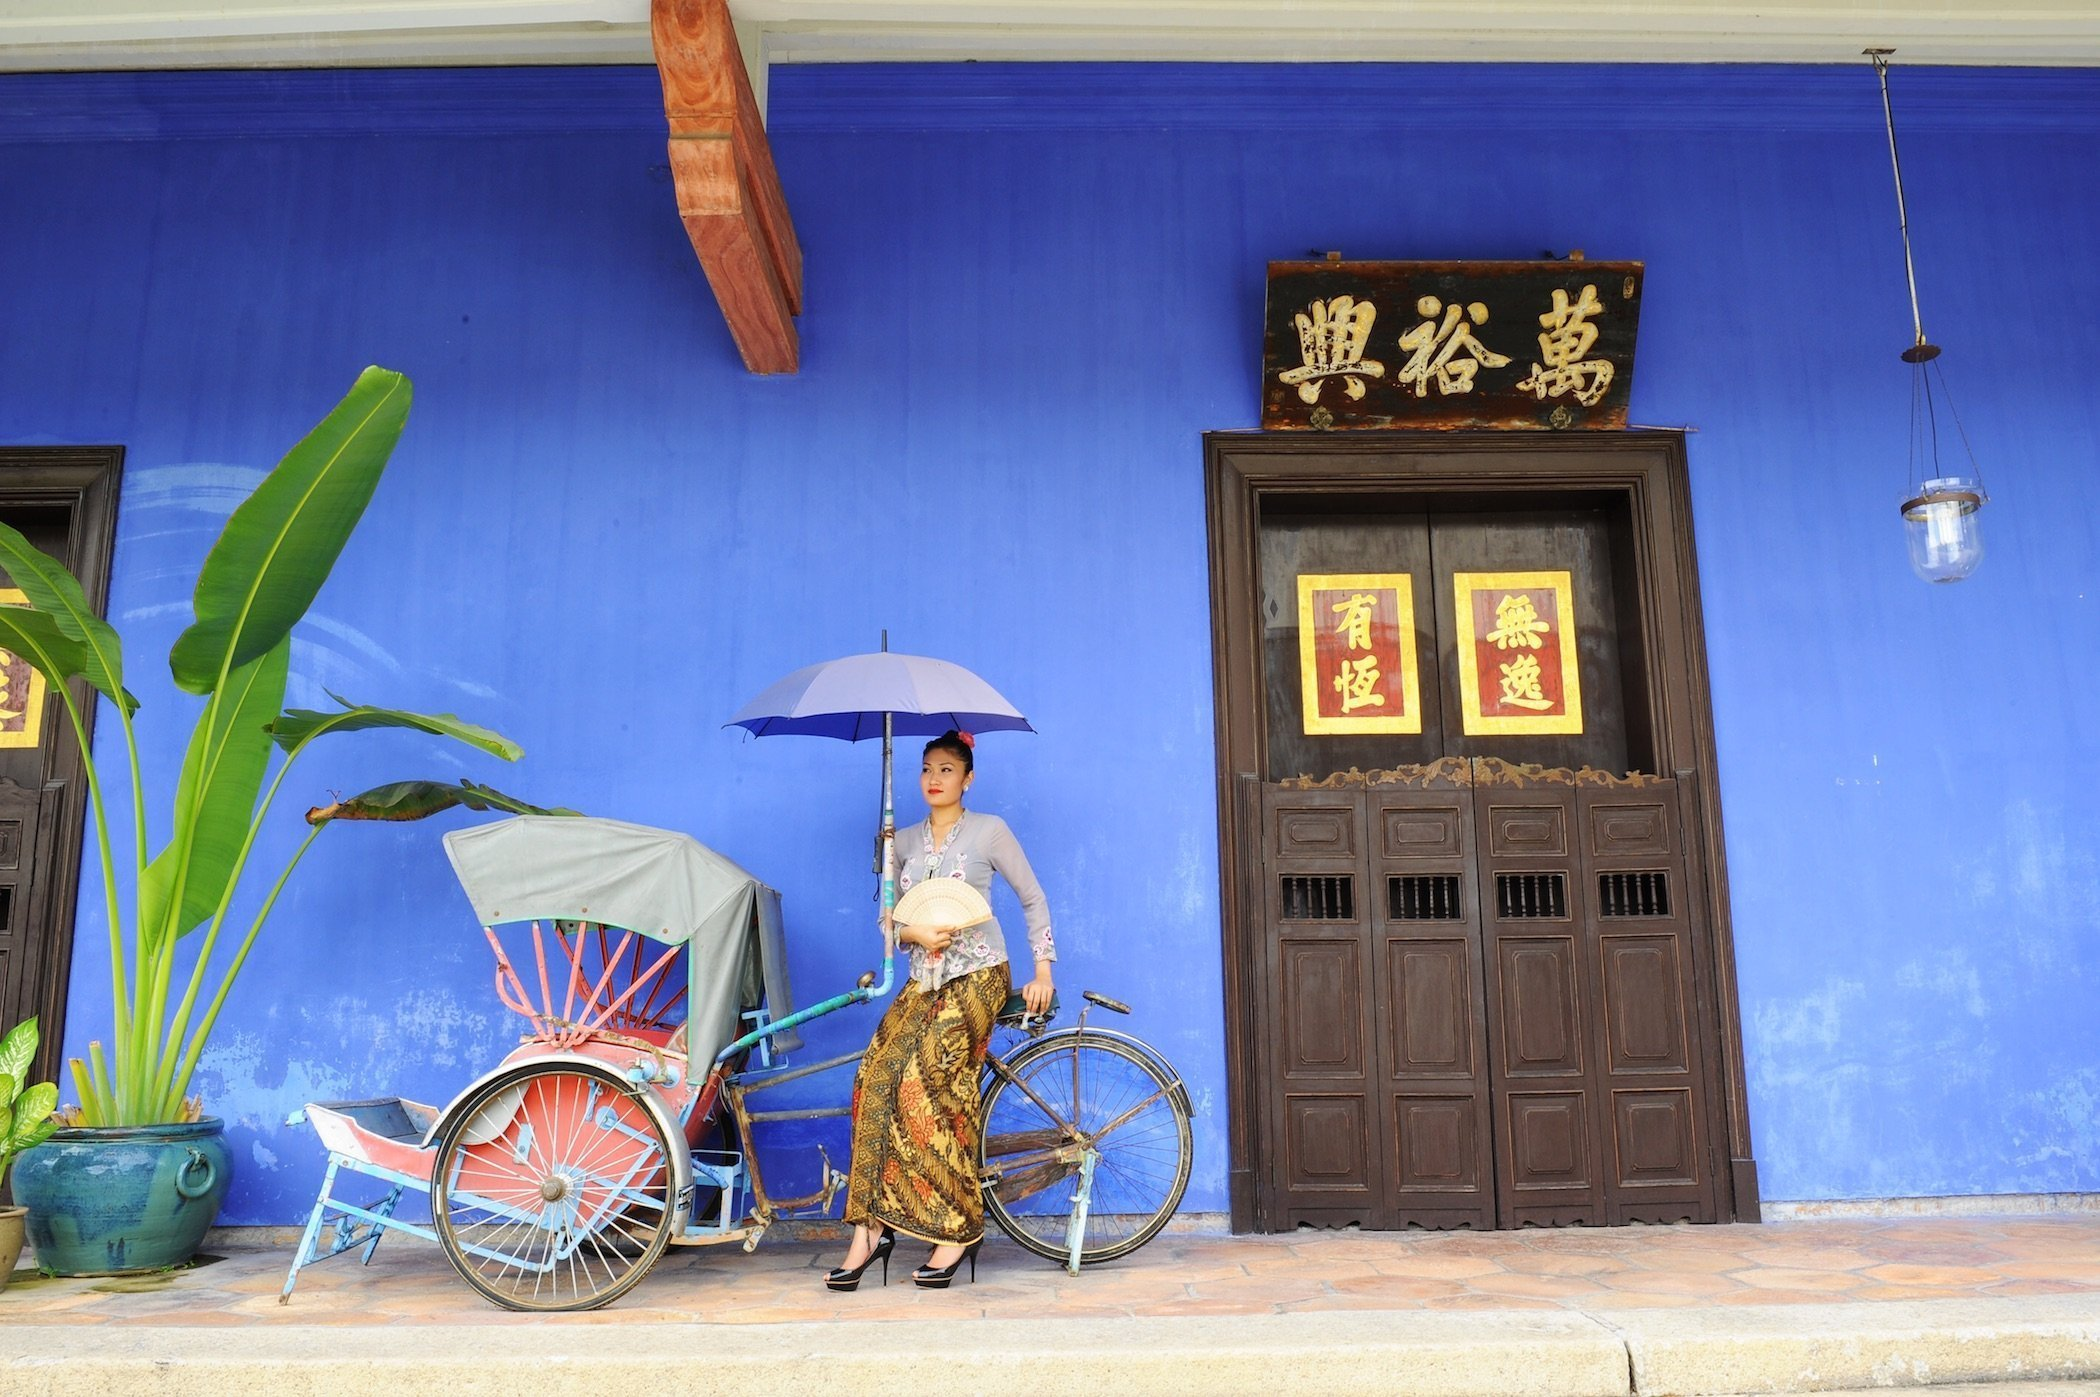 The Cheong Fatt Tze - Blue Mansion is the most iconic boutique heritage hotel in historic George Town, Penang.